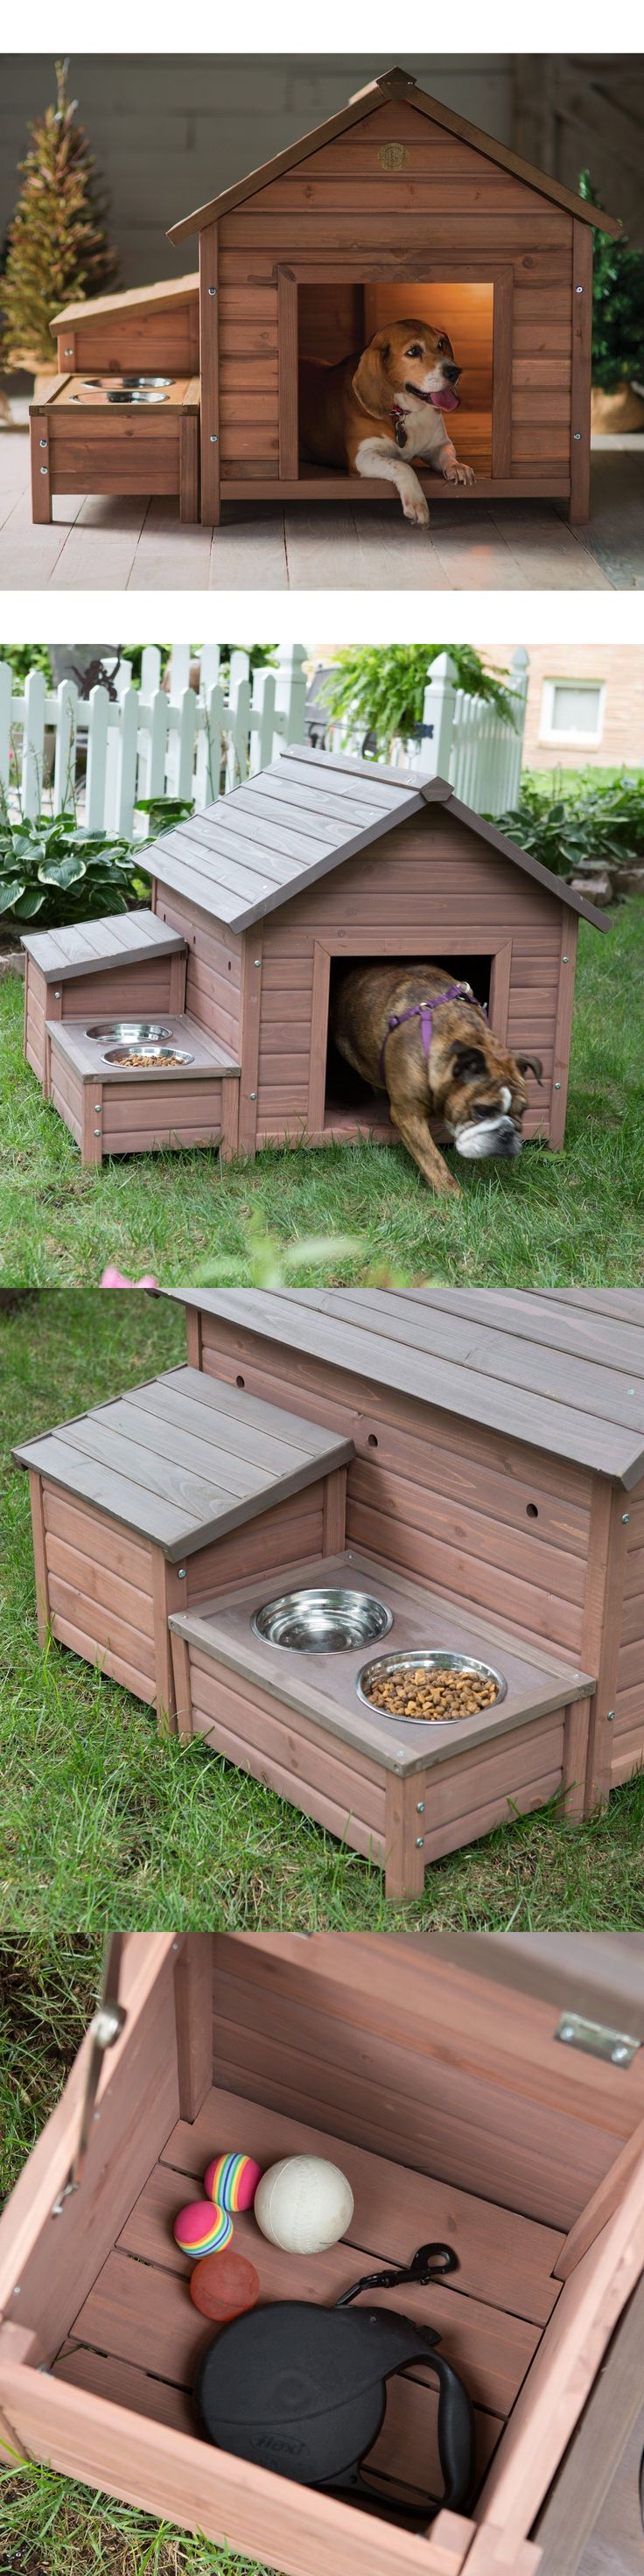 Dog Houses 108884: Dog House Wood Outdoor Home Bed Puppy Shelter Pet Kennel Wooden Sleeping Cabin -> BUY IT NOW ONLY: $161.79 on eBay!